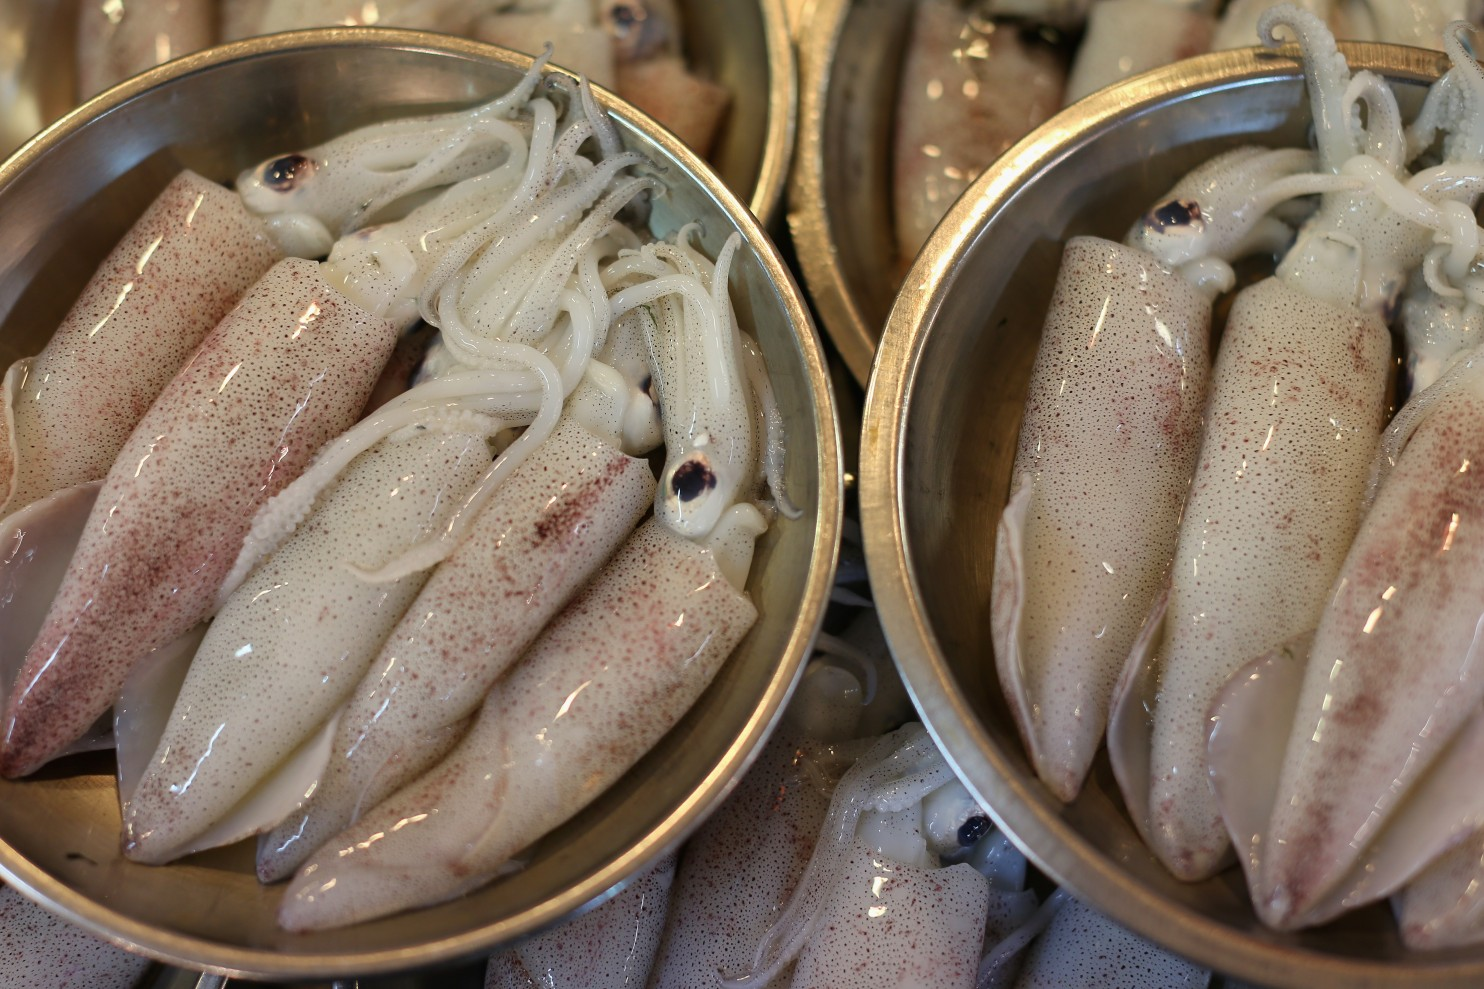 Raw squid is sold at market. This is the first time researchers have discovered an antibiotic-resistant bacteria in food. (Cameron Spencer/Getty Images)